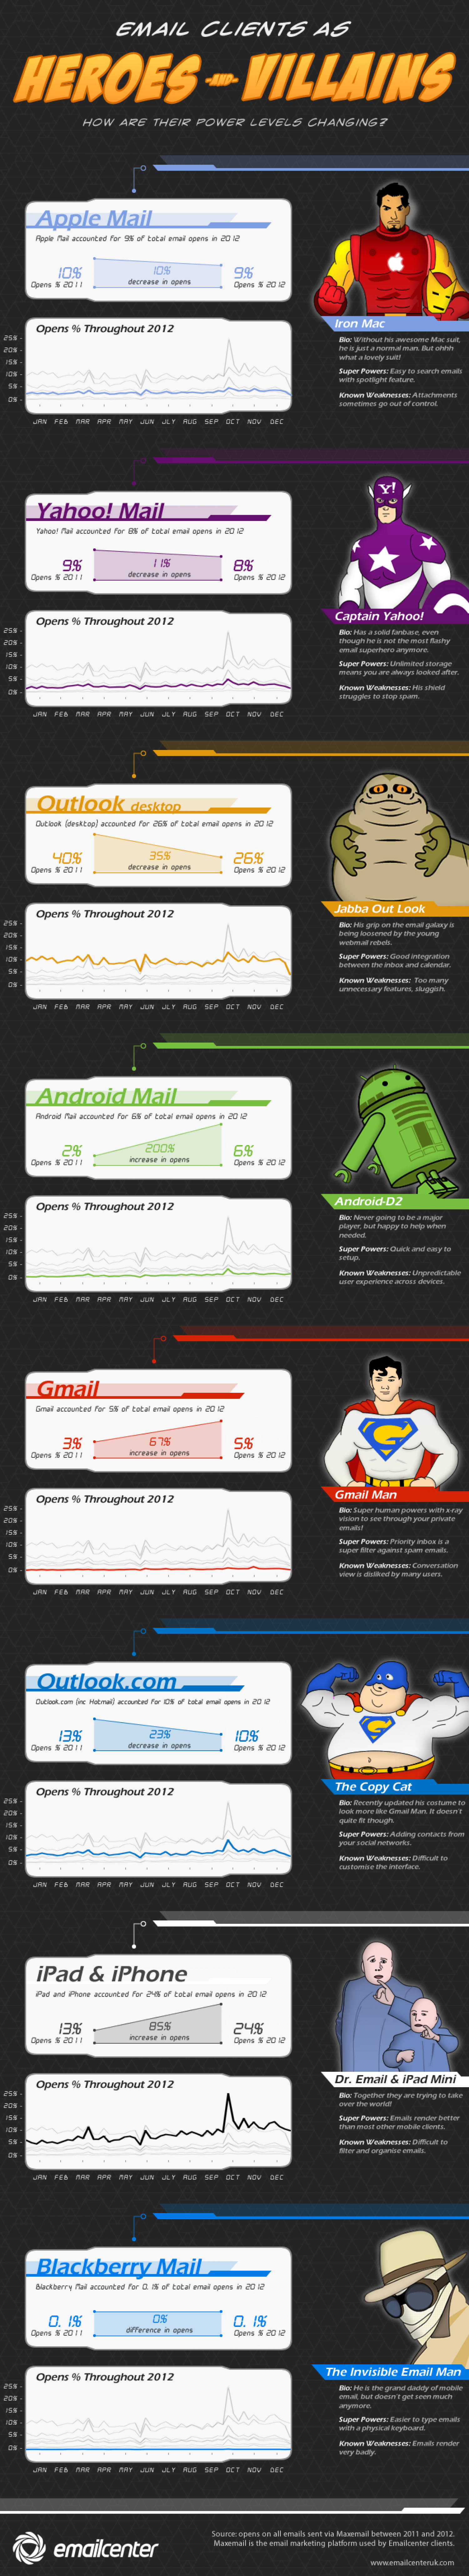 Heroes vs. Villiains: The Battle of the Email Client Infographic